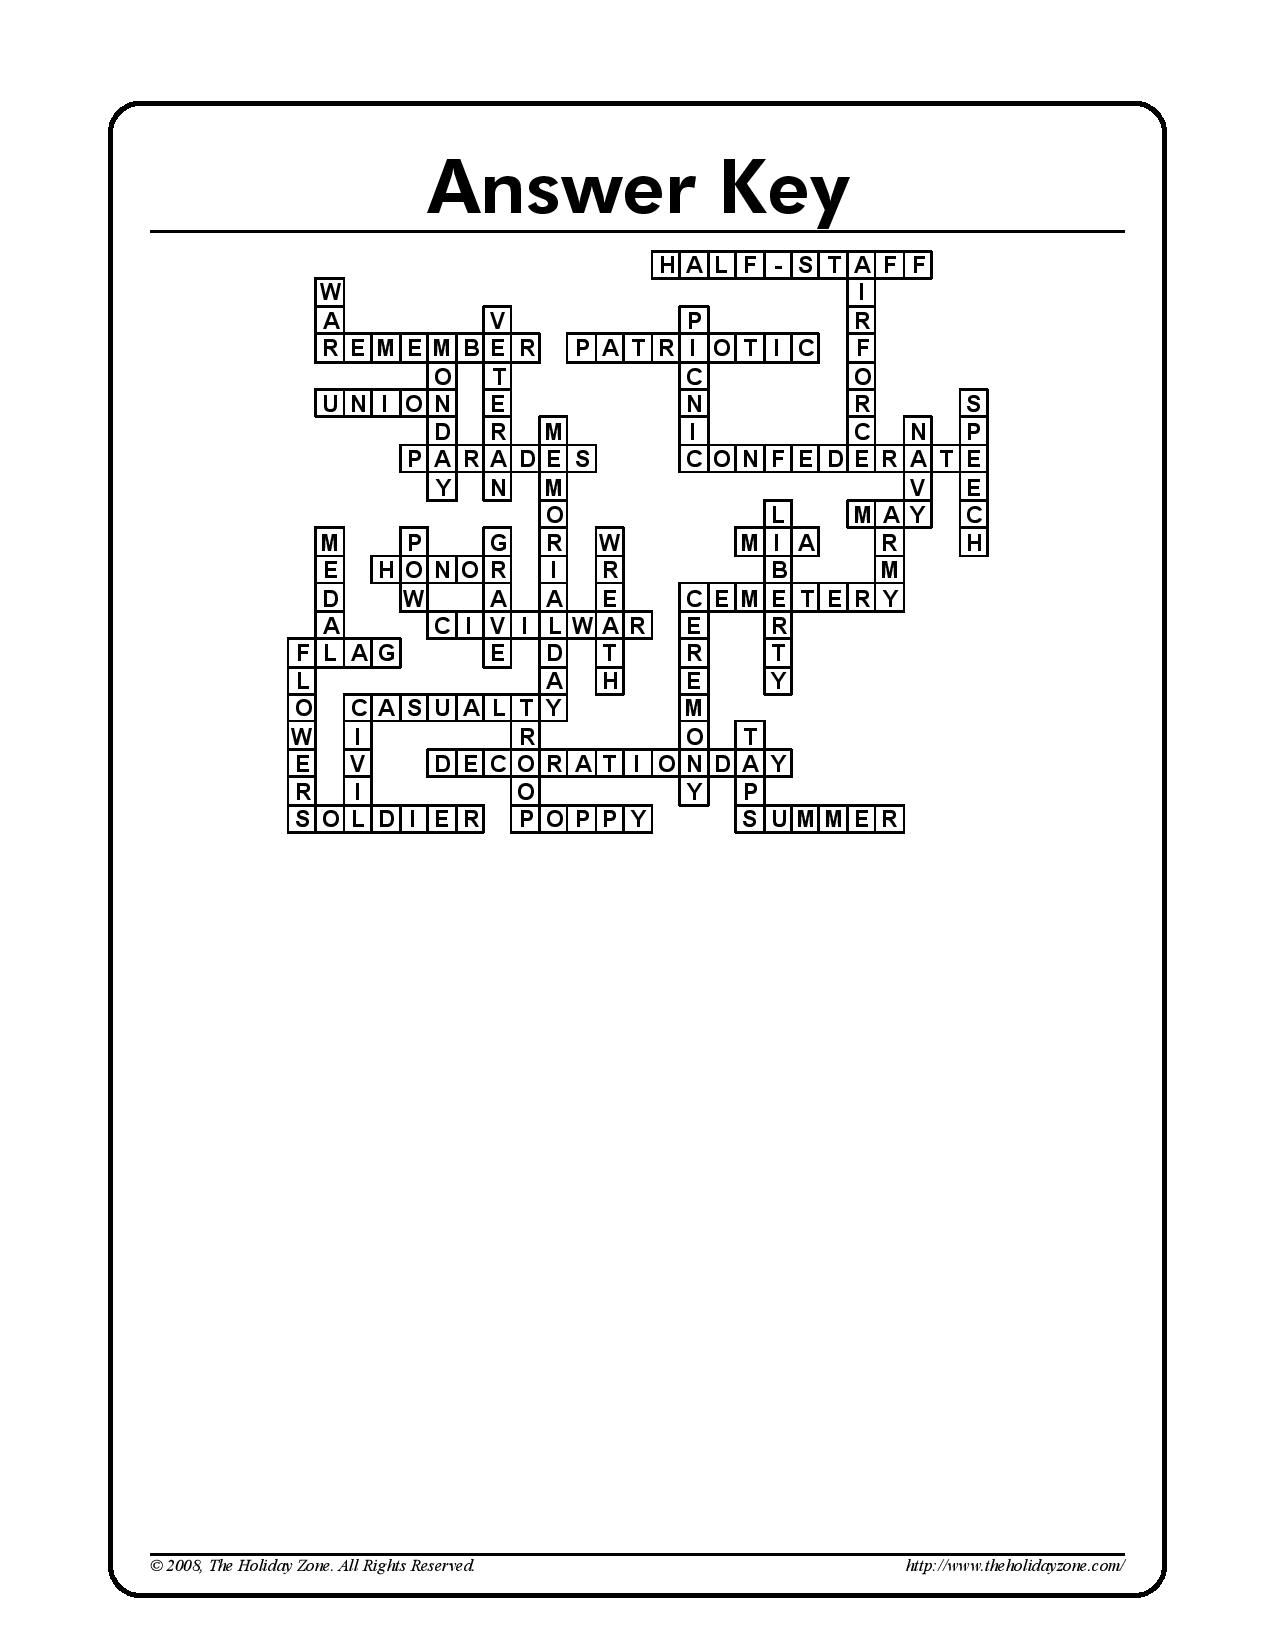 Memorial Day crossword puzzle answer sheet | Holiday Classroom